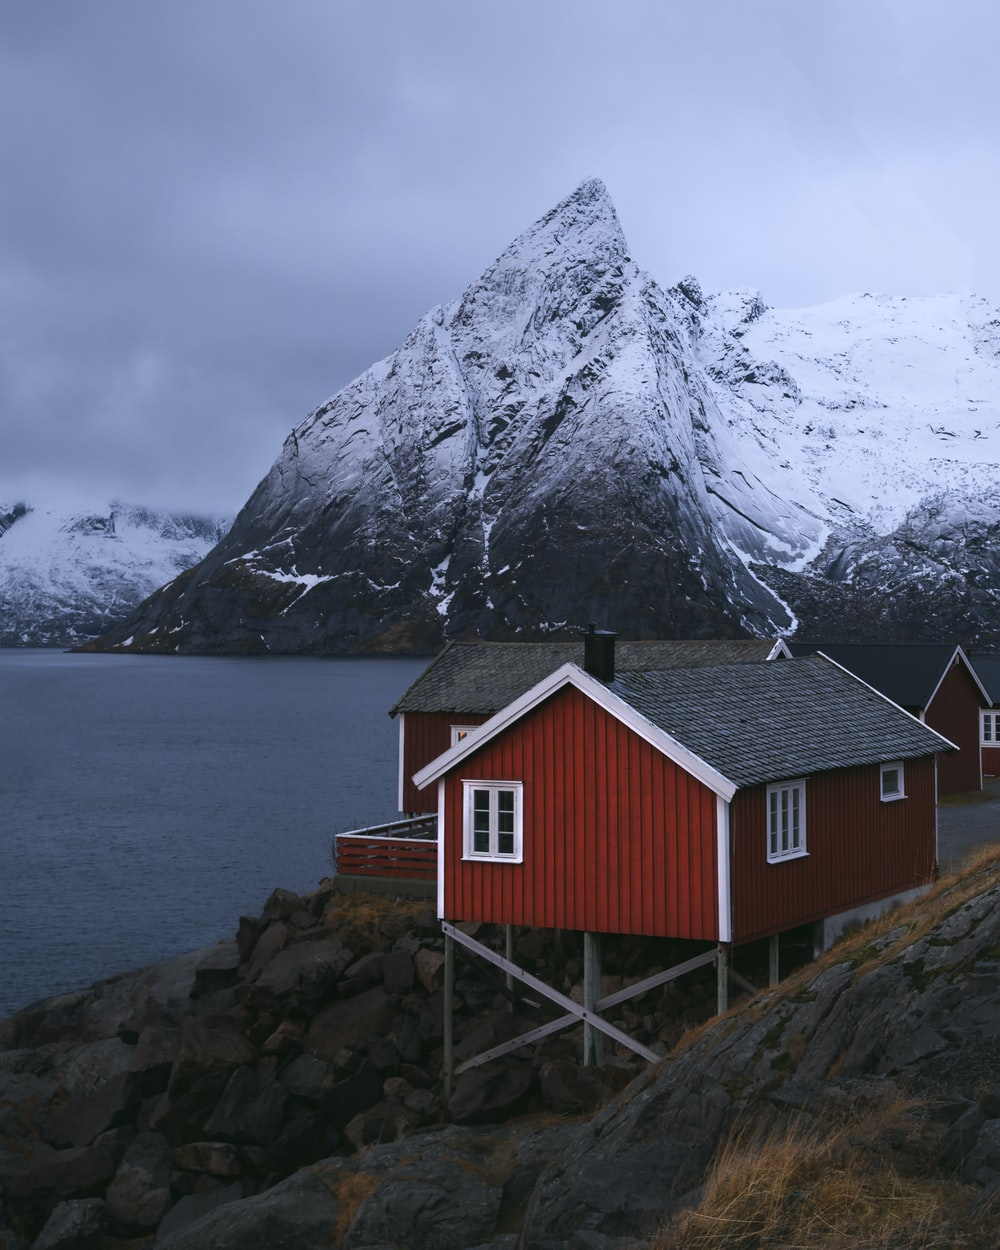 red and white wooden house near body of water and snow covered mountain during daytime